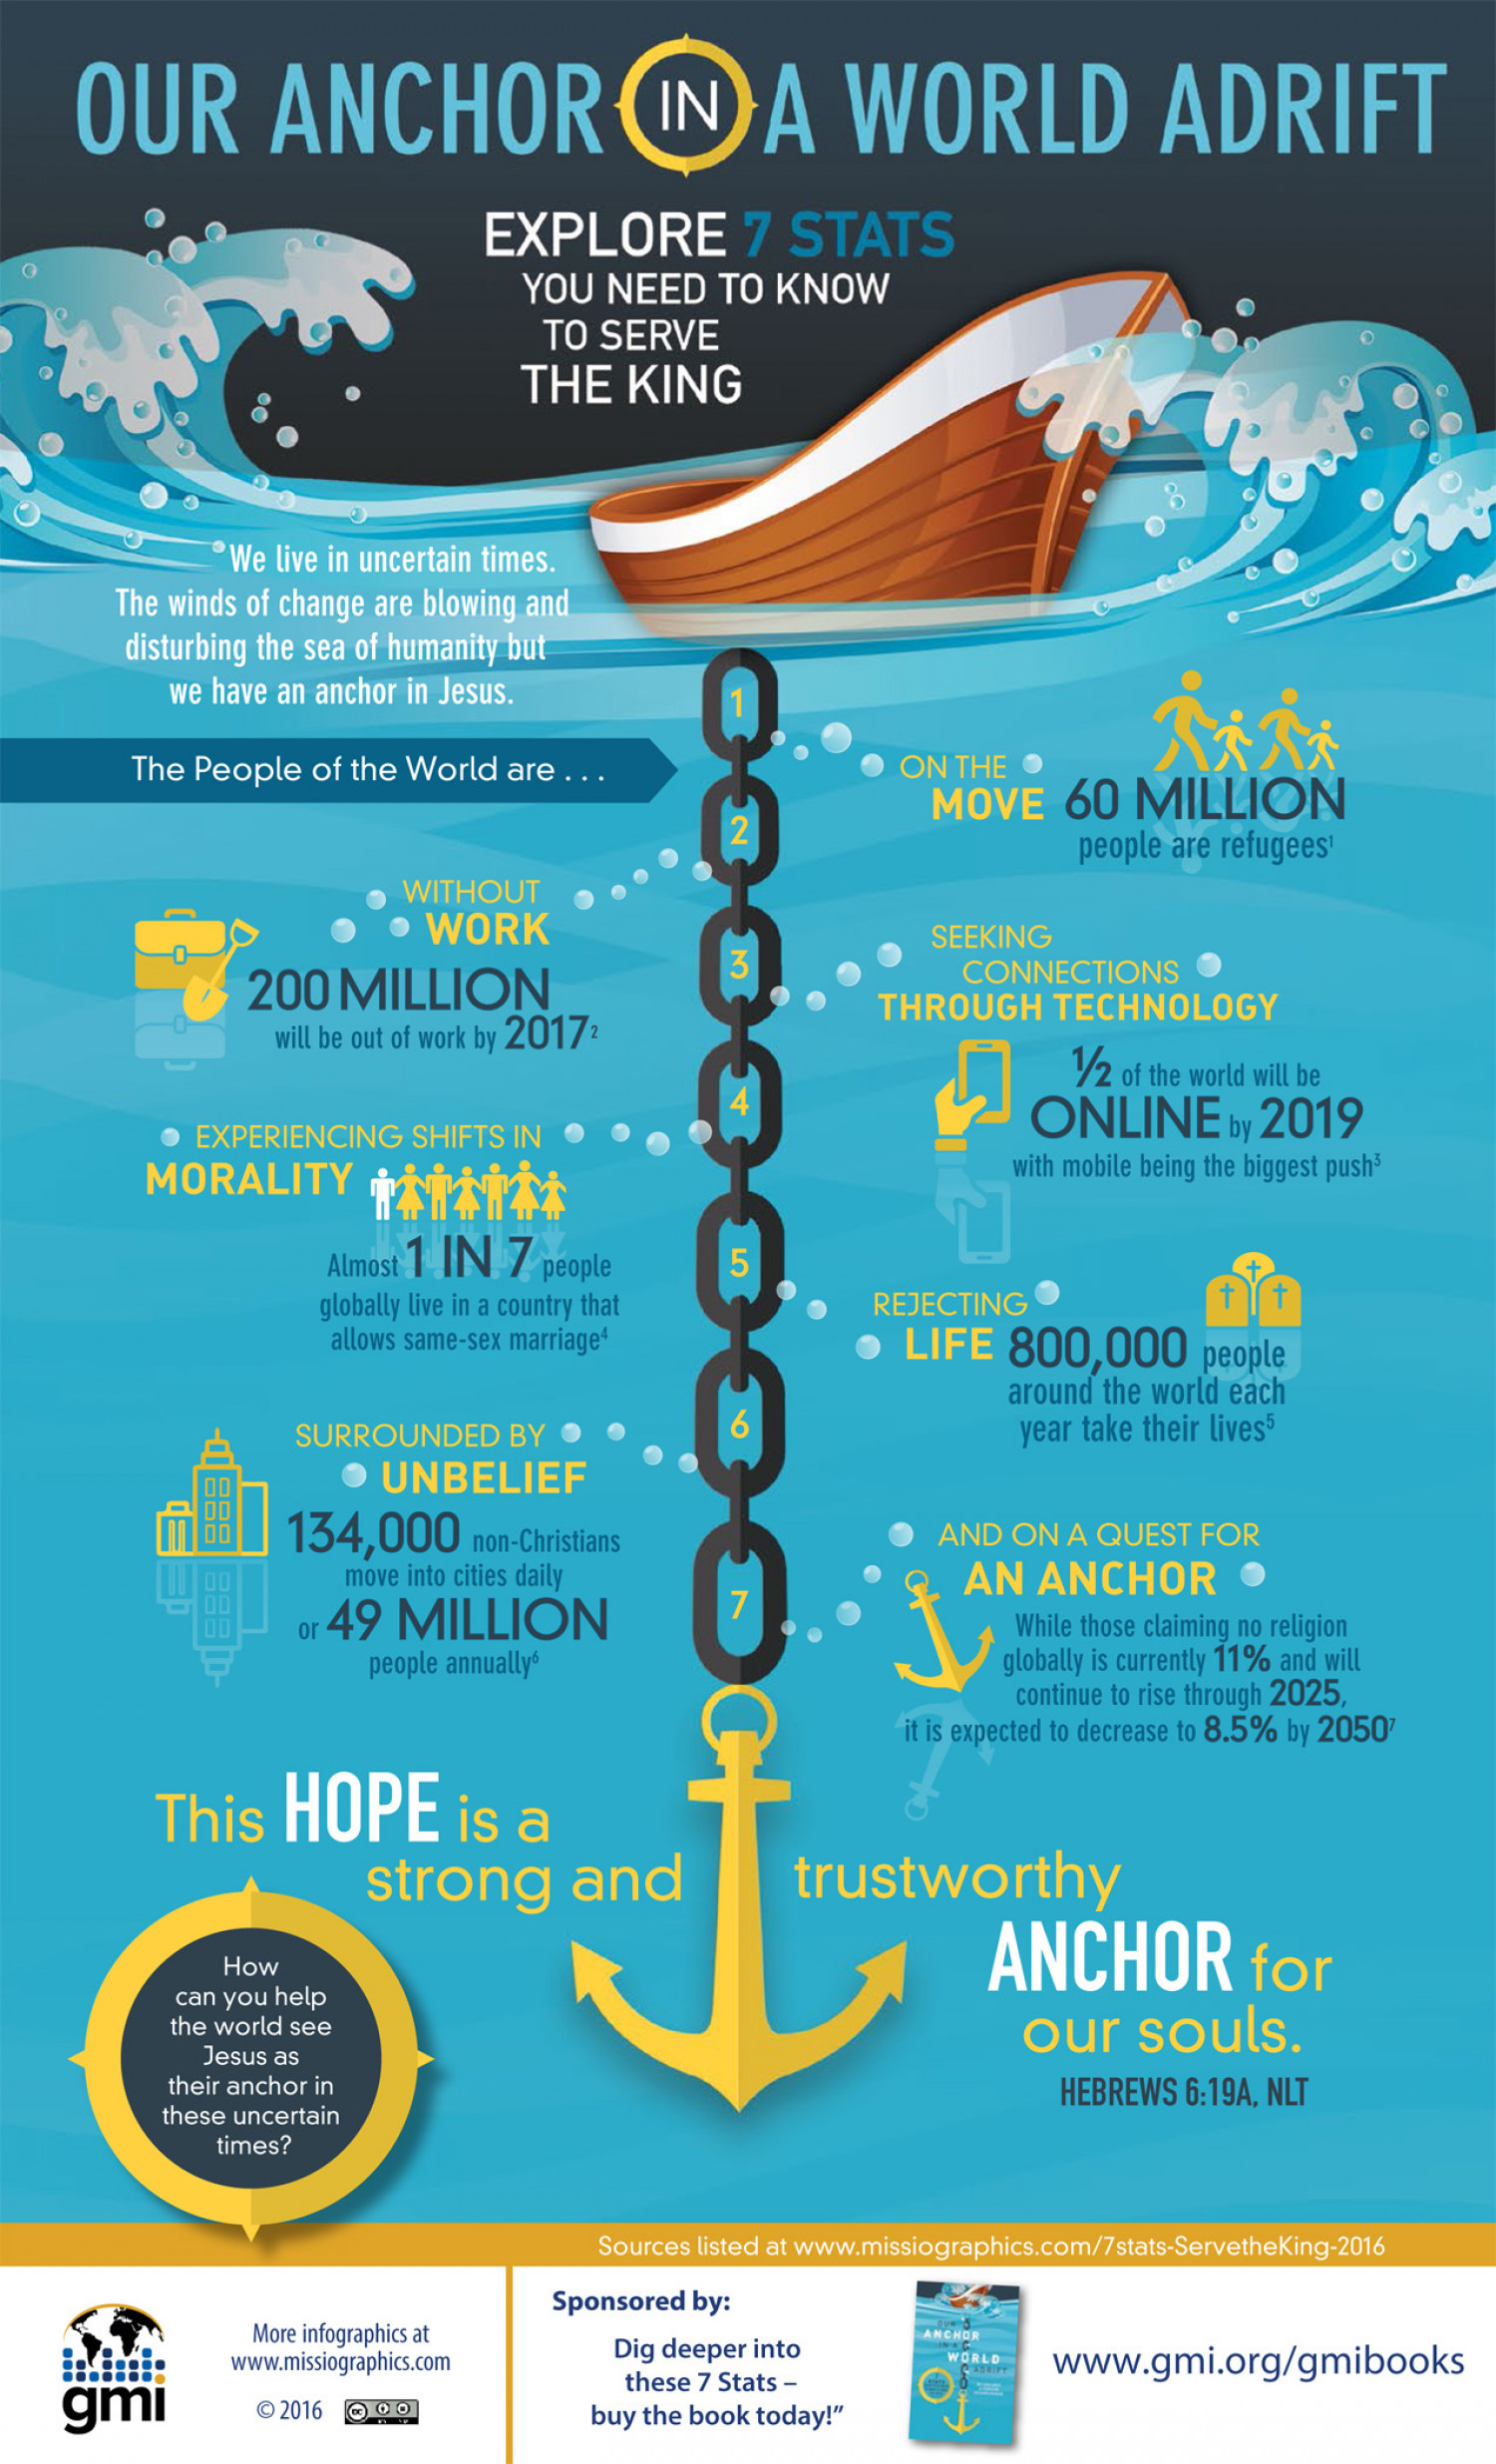 Our Anchor in a World Adrift: 7 Stats You Need to Know to Serve the King Infographic